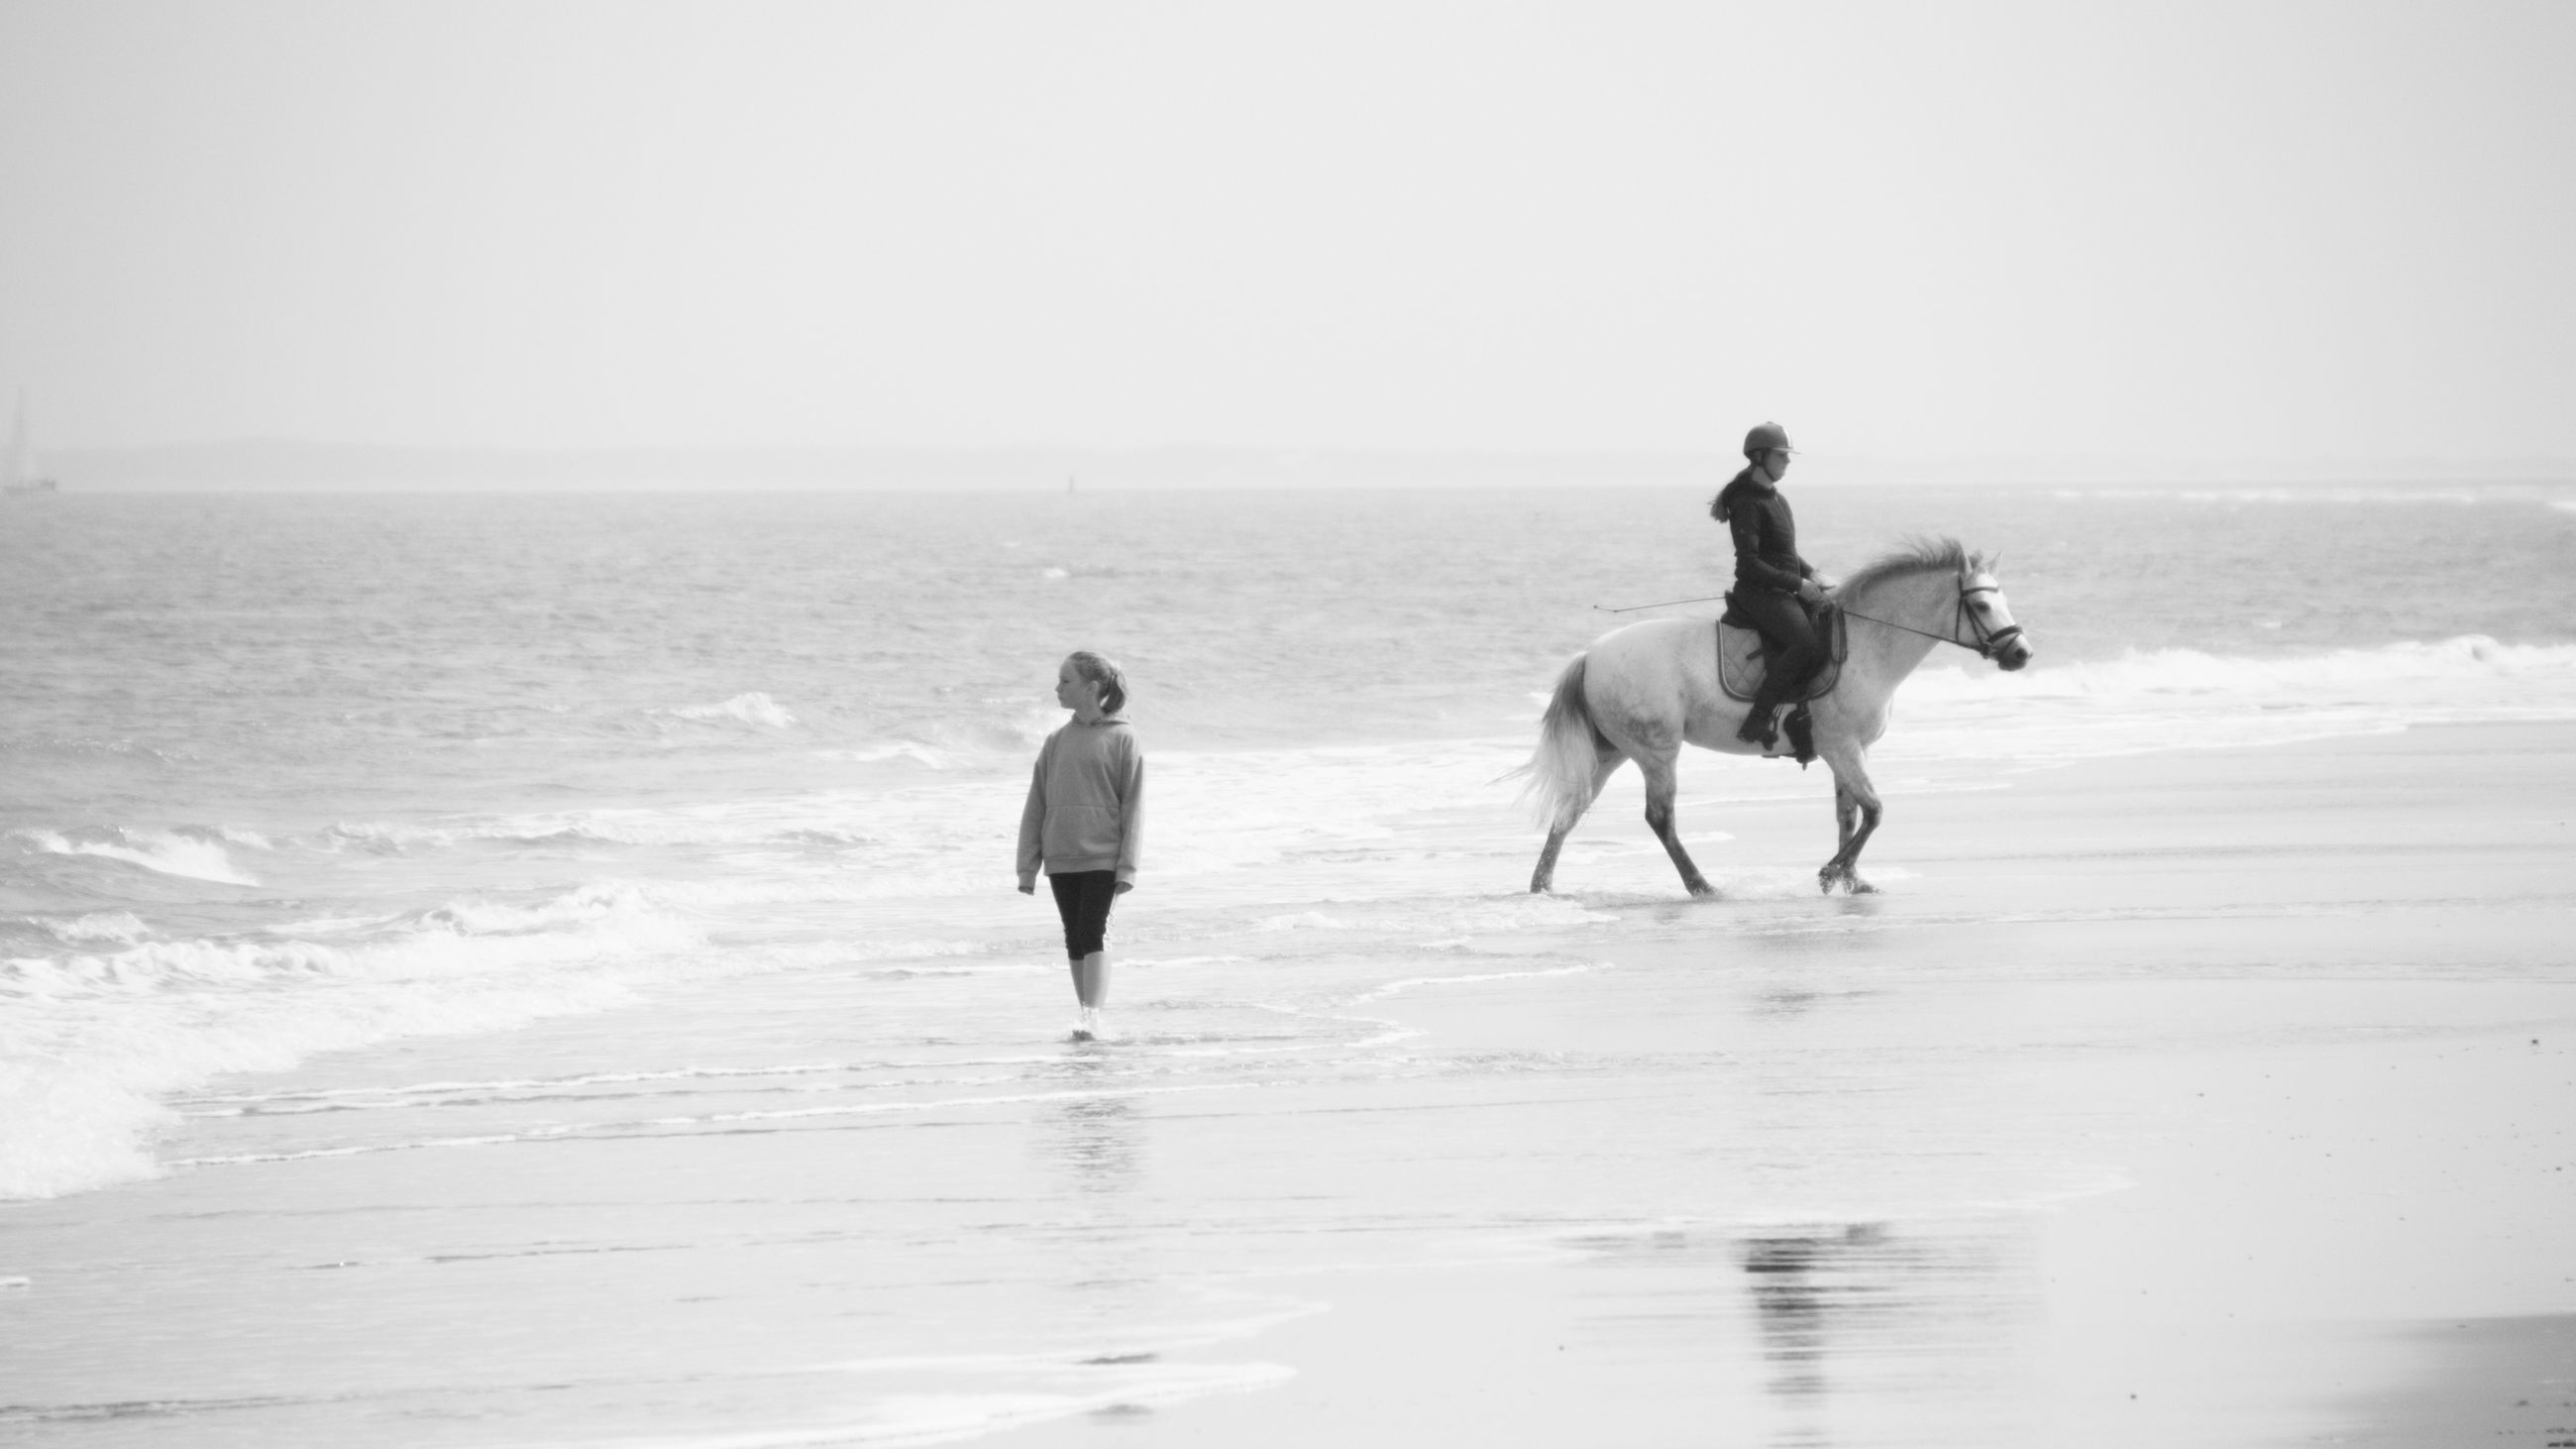 horse, water, sea, land, beach, mammal, animal, domestic animals, sky, animal themes, pet, nature, black and white, horizon, horizon over water, motion, animal wildlife, two people, men, full length, adult, sand, horseback riding, beauty in nature, white, activity, day, riding, leisure activity, holiday, vacation, trip, monochrome, monochrome photography, scenics - nature, togetherness, livestock, lifestyles, sports, person, wave, copy space, child, outdoors, ocean, women, clear sky, travel, walking, sunny, childhood, rear view, tranquility